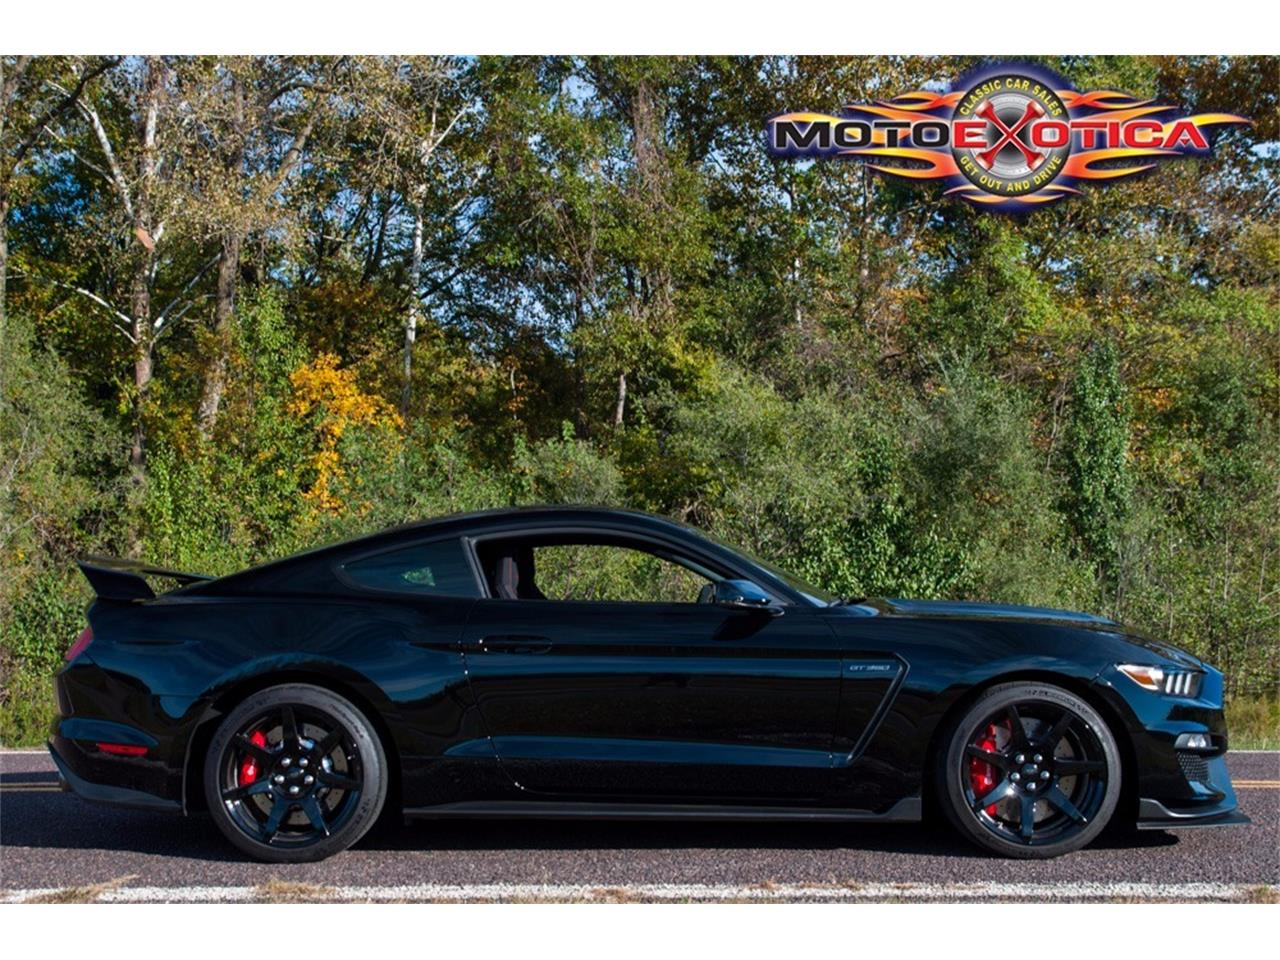 Large Picture of '16 Mustang Shelby GT350 - $98,900.00 - MNZL